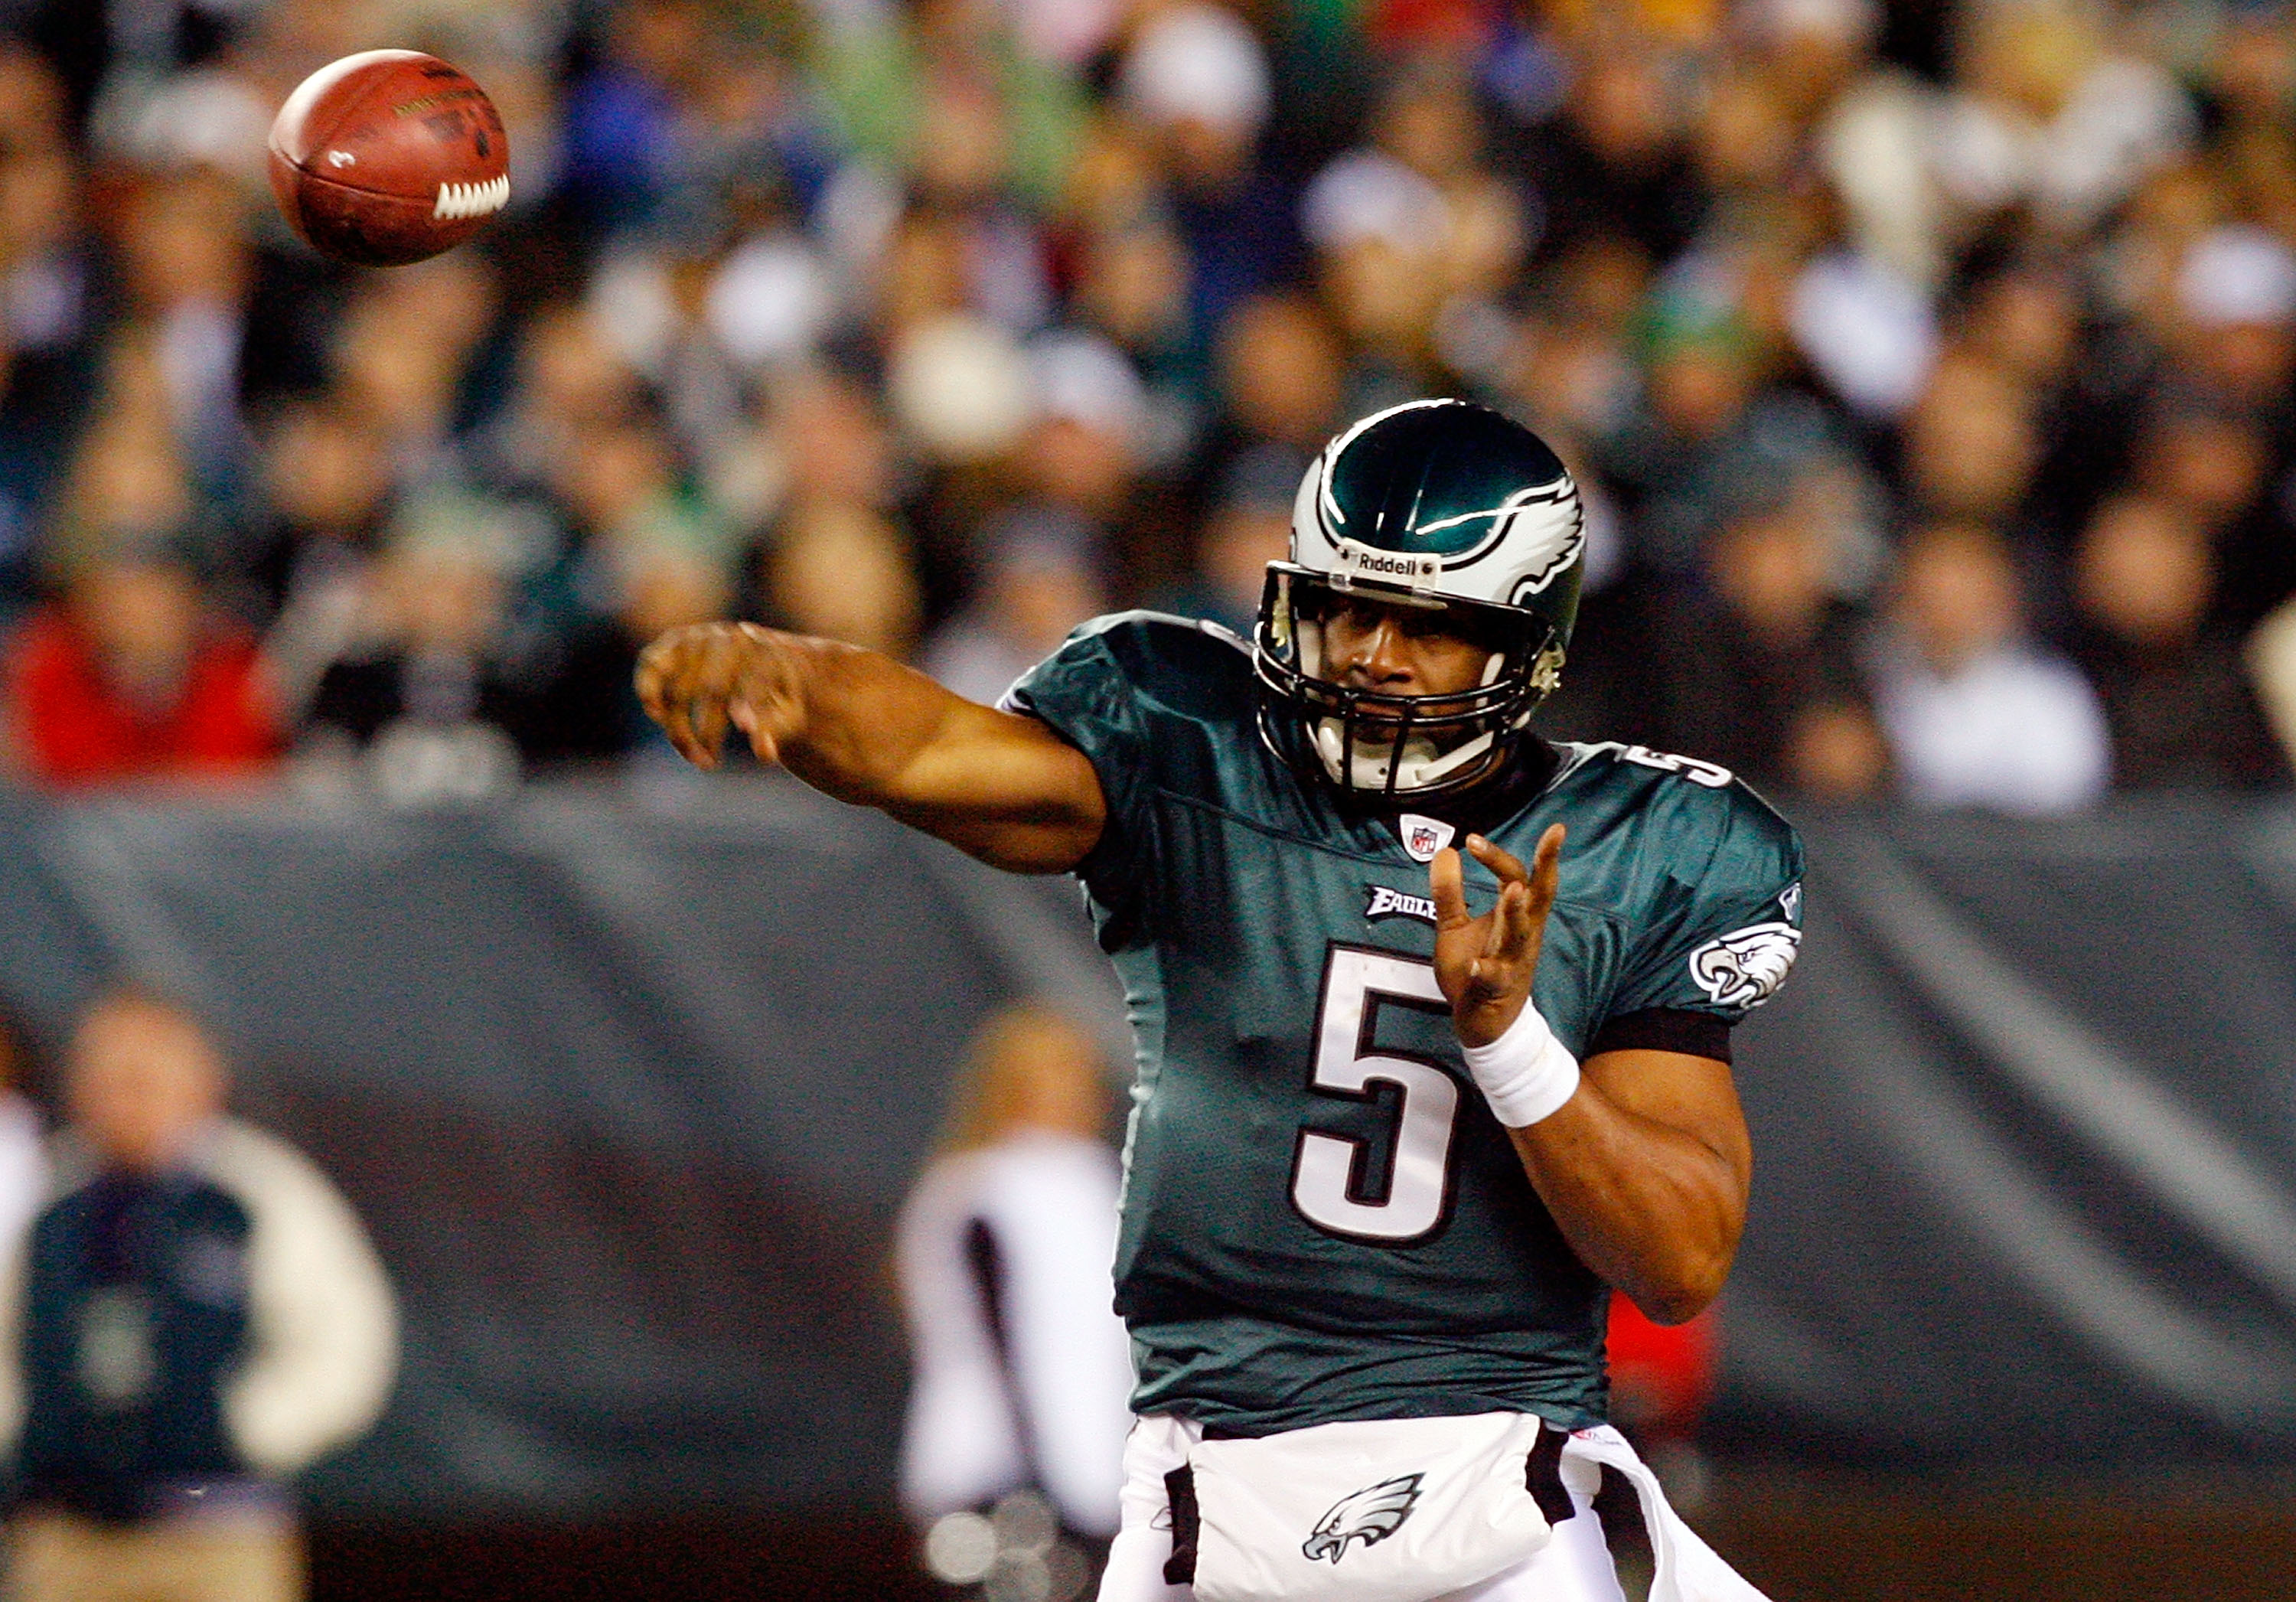 PHILADELPHIA - DECEMBER 27:  Donovan McNabb #5 of the Philadelphia Eagles throws a pass against the Denver Broncos on December 27, 2009 at Lincoln Financial Field in Philadelphia, Pennsylvania. The Eagles defeated the Broncos 30-27.  (Photo by Jim McIsaac